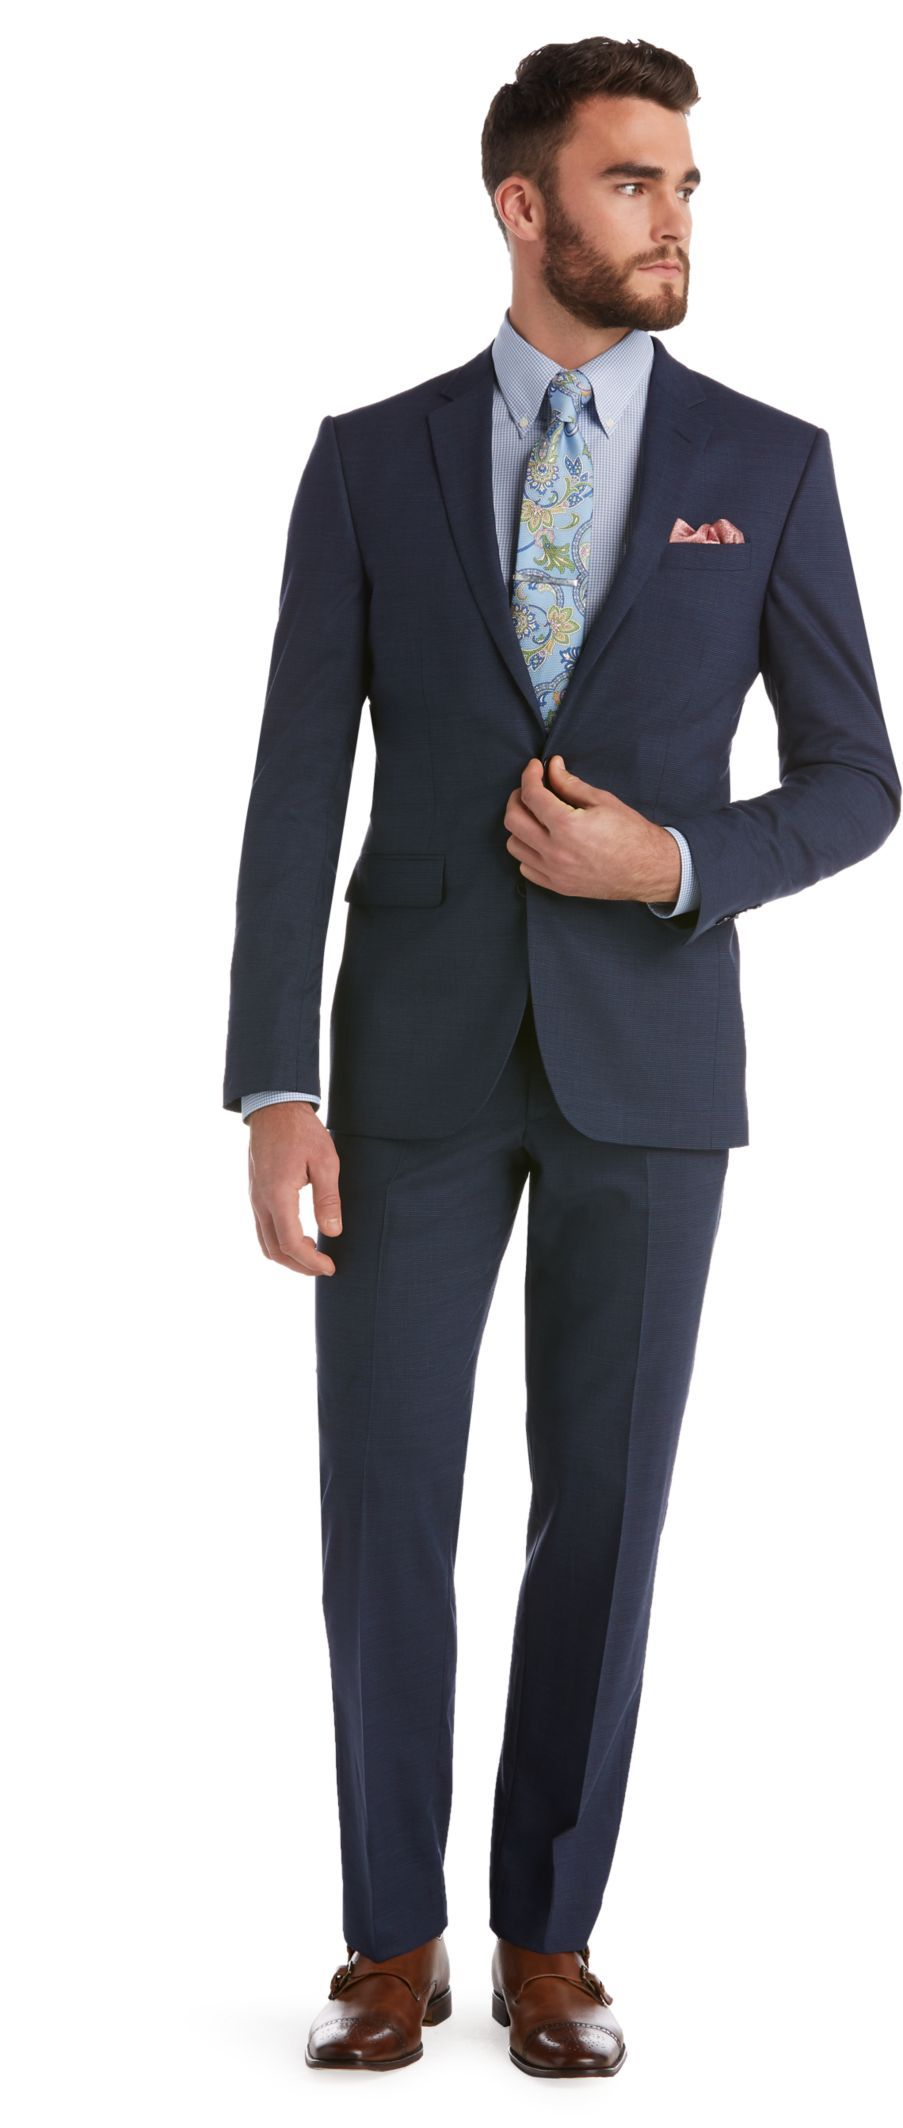 1905 Collection Slim Fit Suit - Big   Tall  13285c7d2